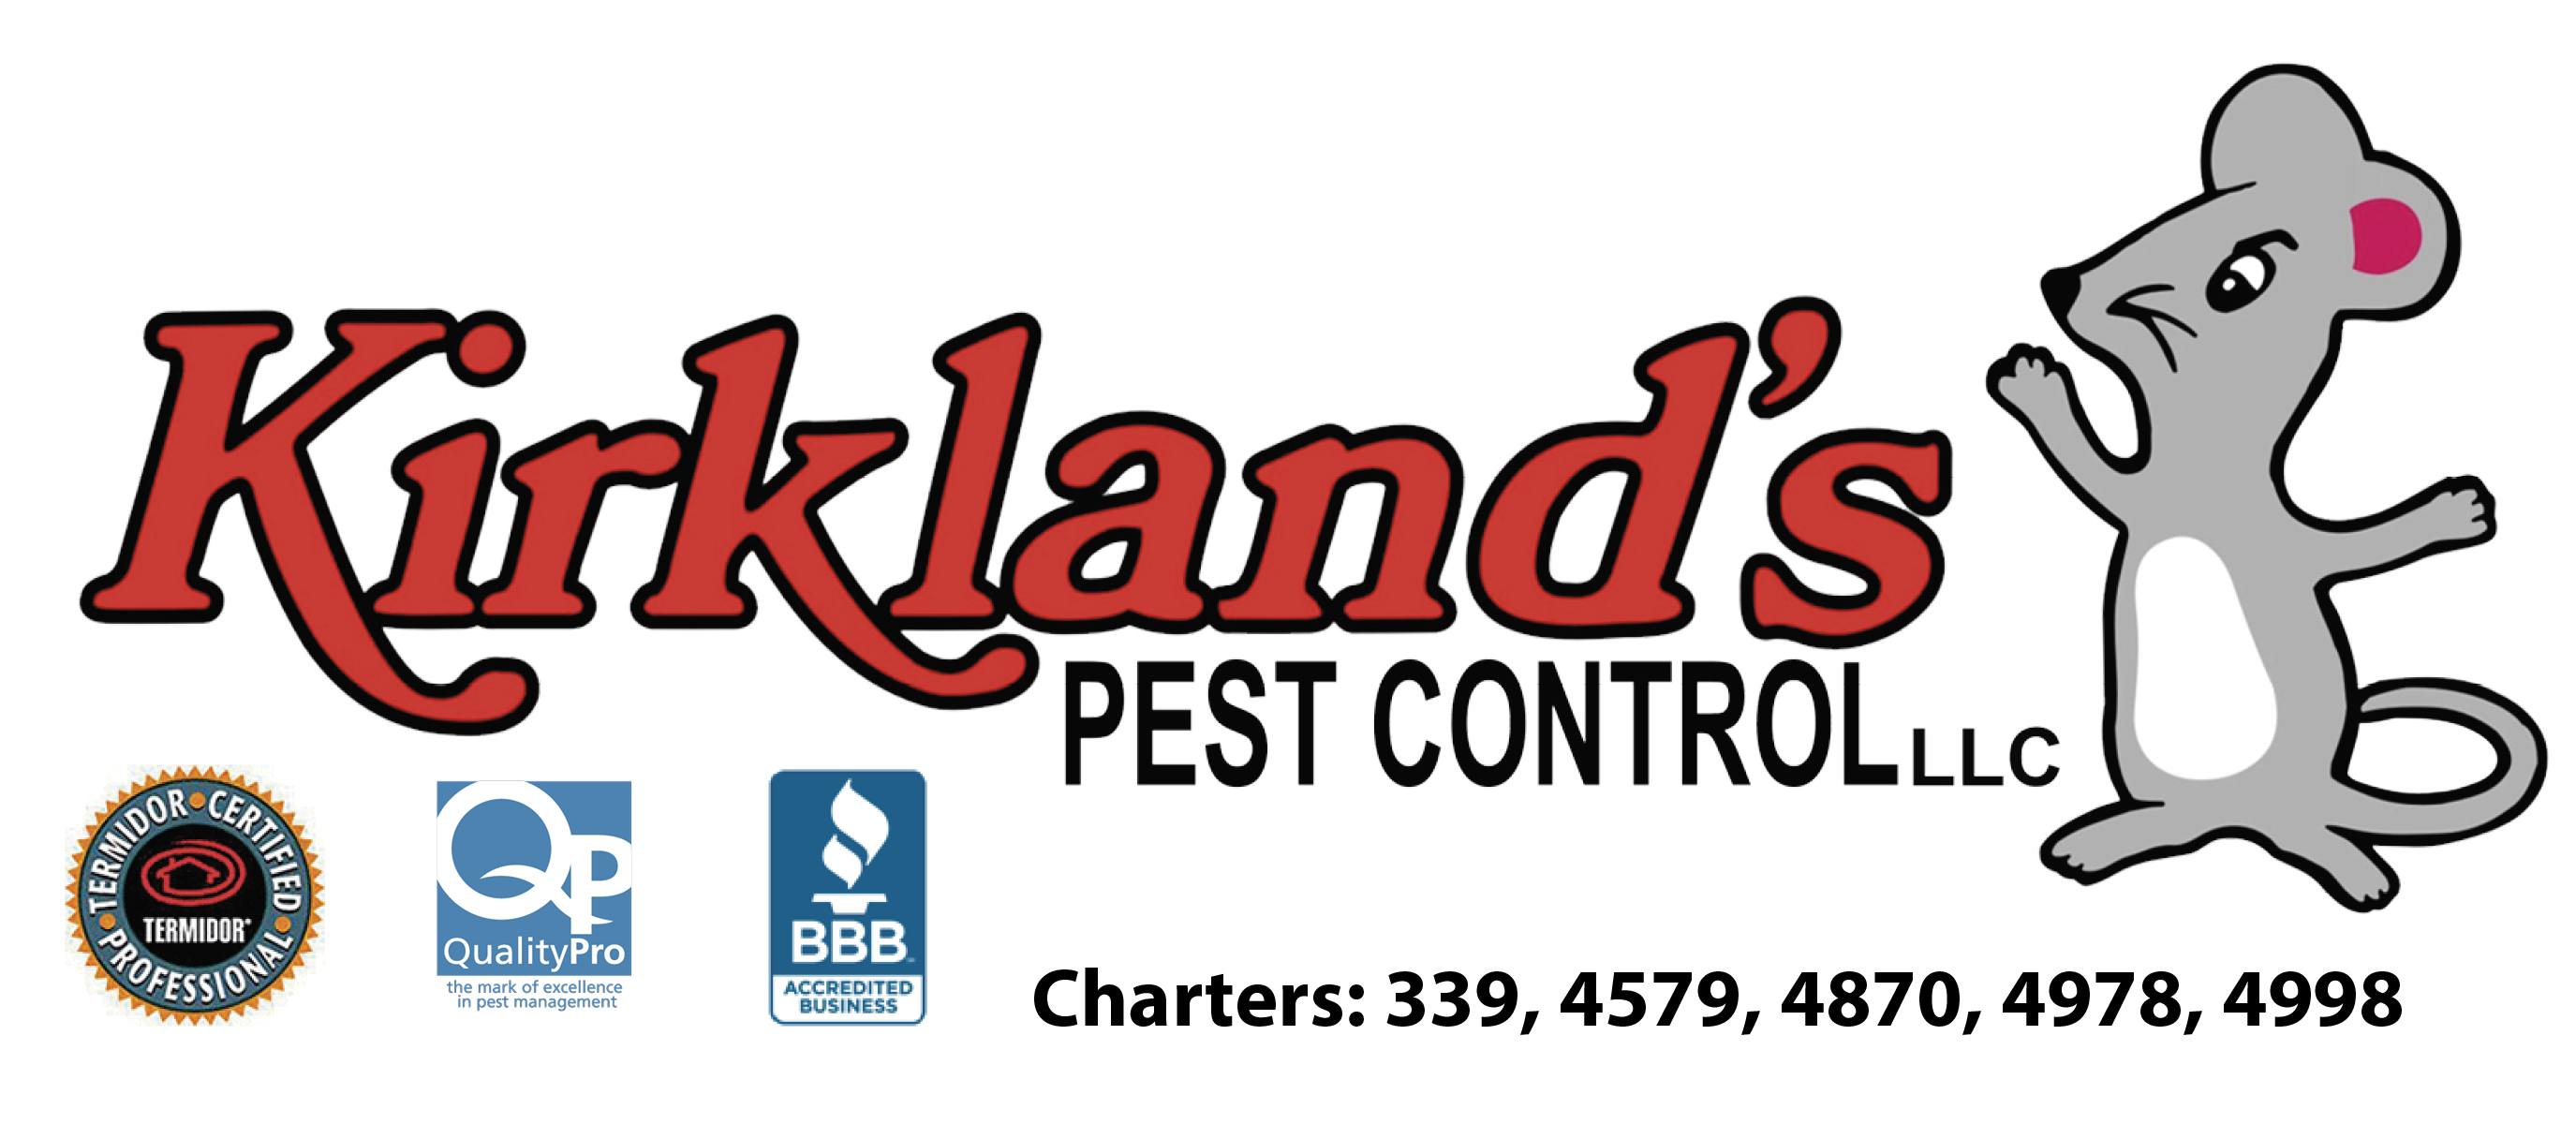 Kirklands Pest Control LLC